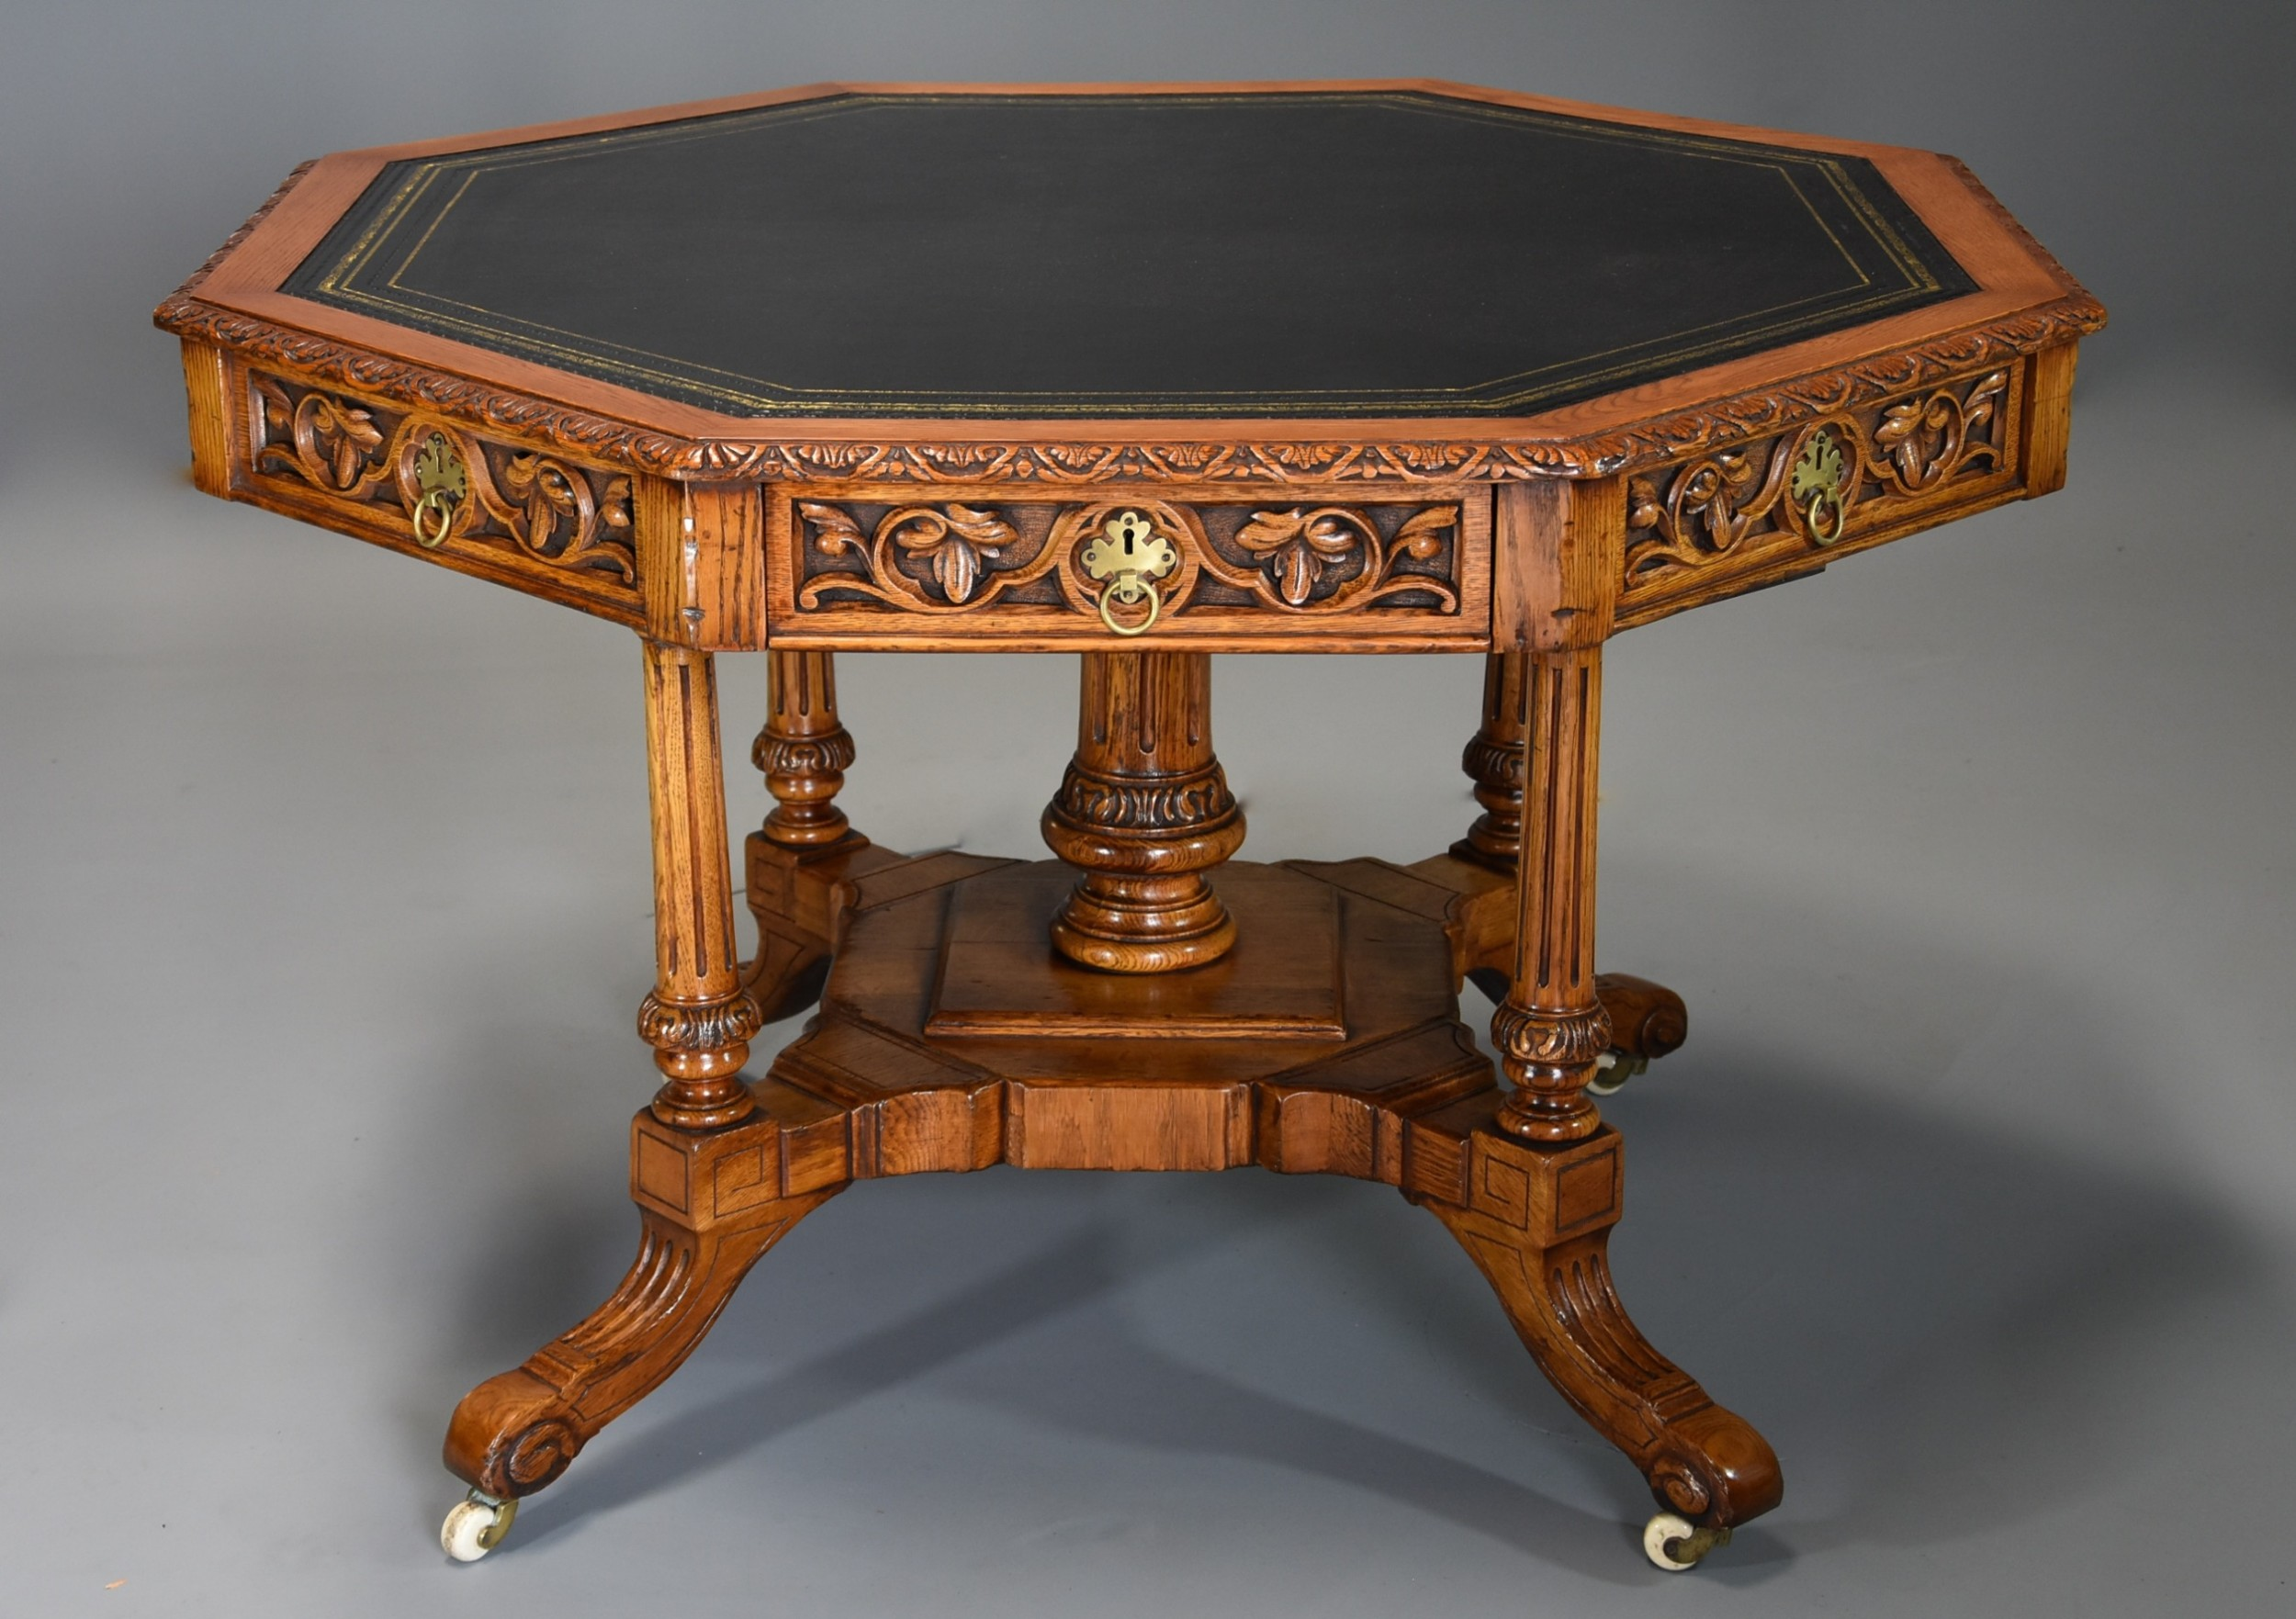 midlate 19th century oak octagonal library table by th filmer sons oxford st london